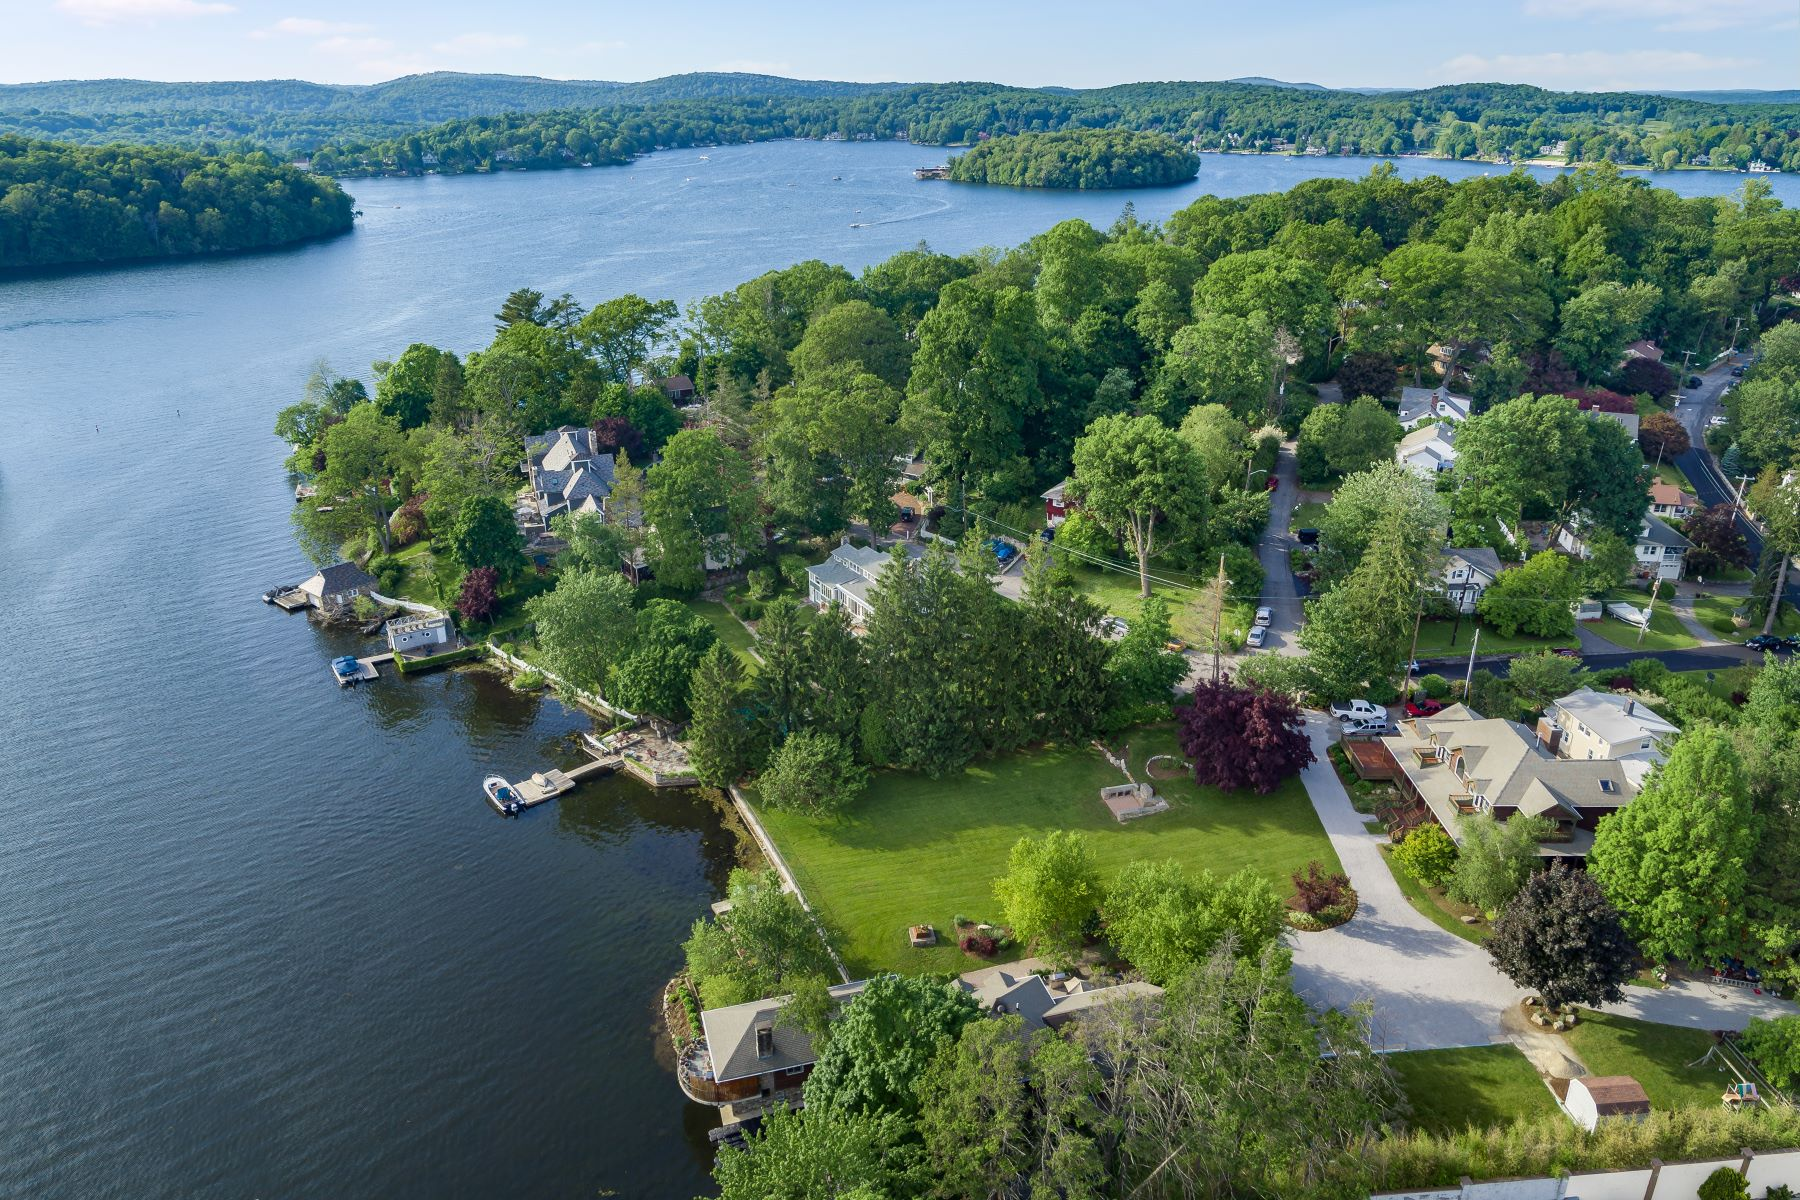 Single Family Homes for Sale at Spectacular Private Lakefront Estate 5 Tamarack Road Mahopac, New York 10541 United States